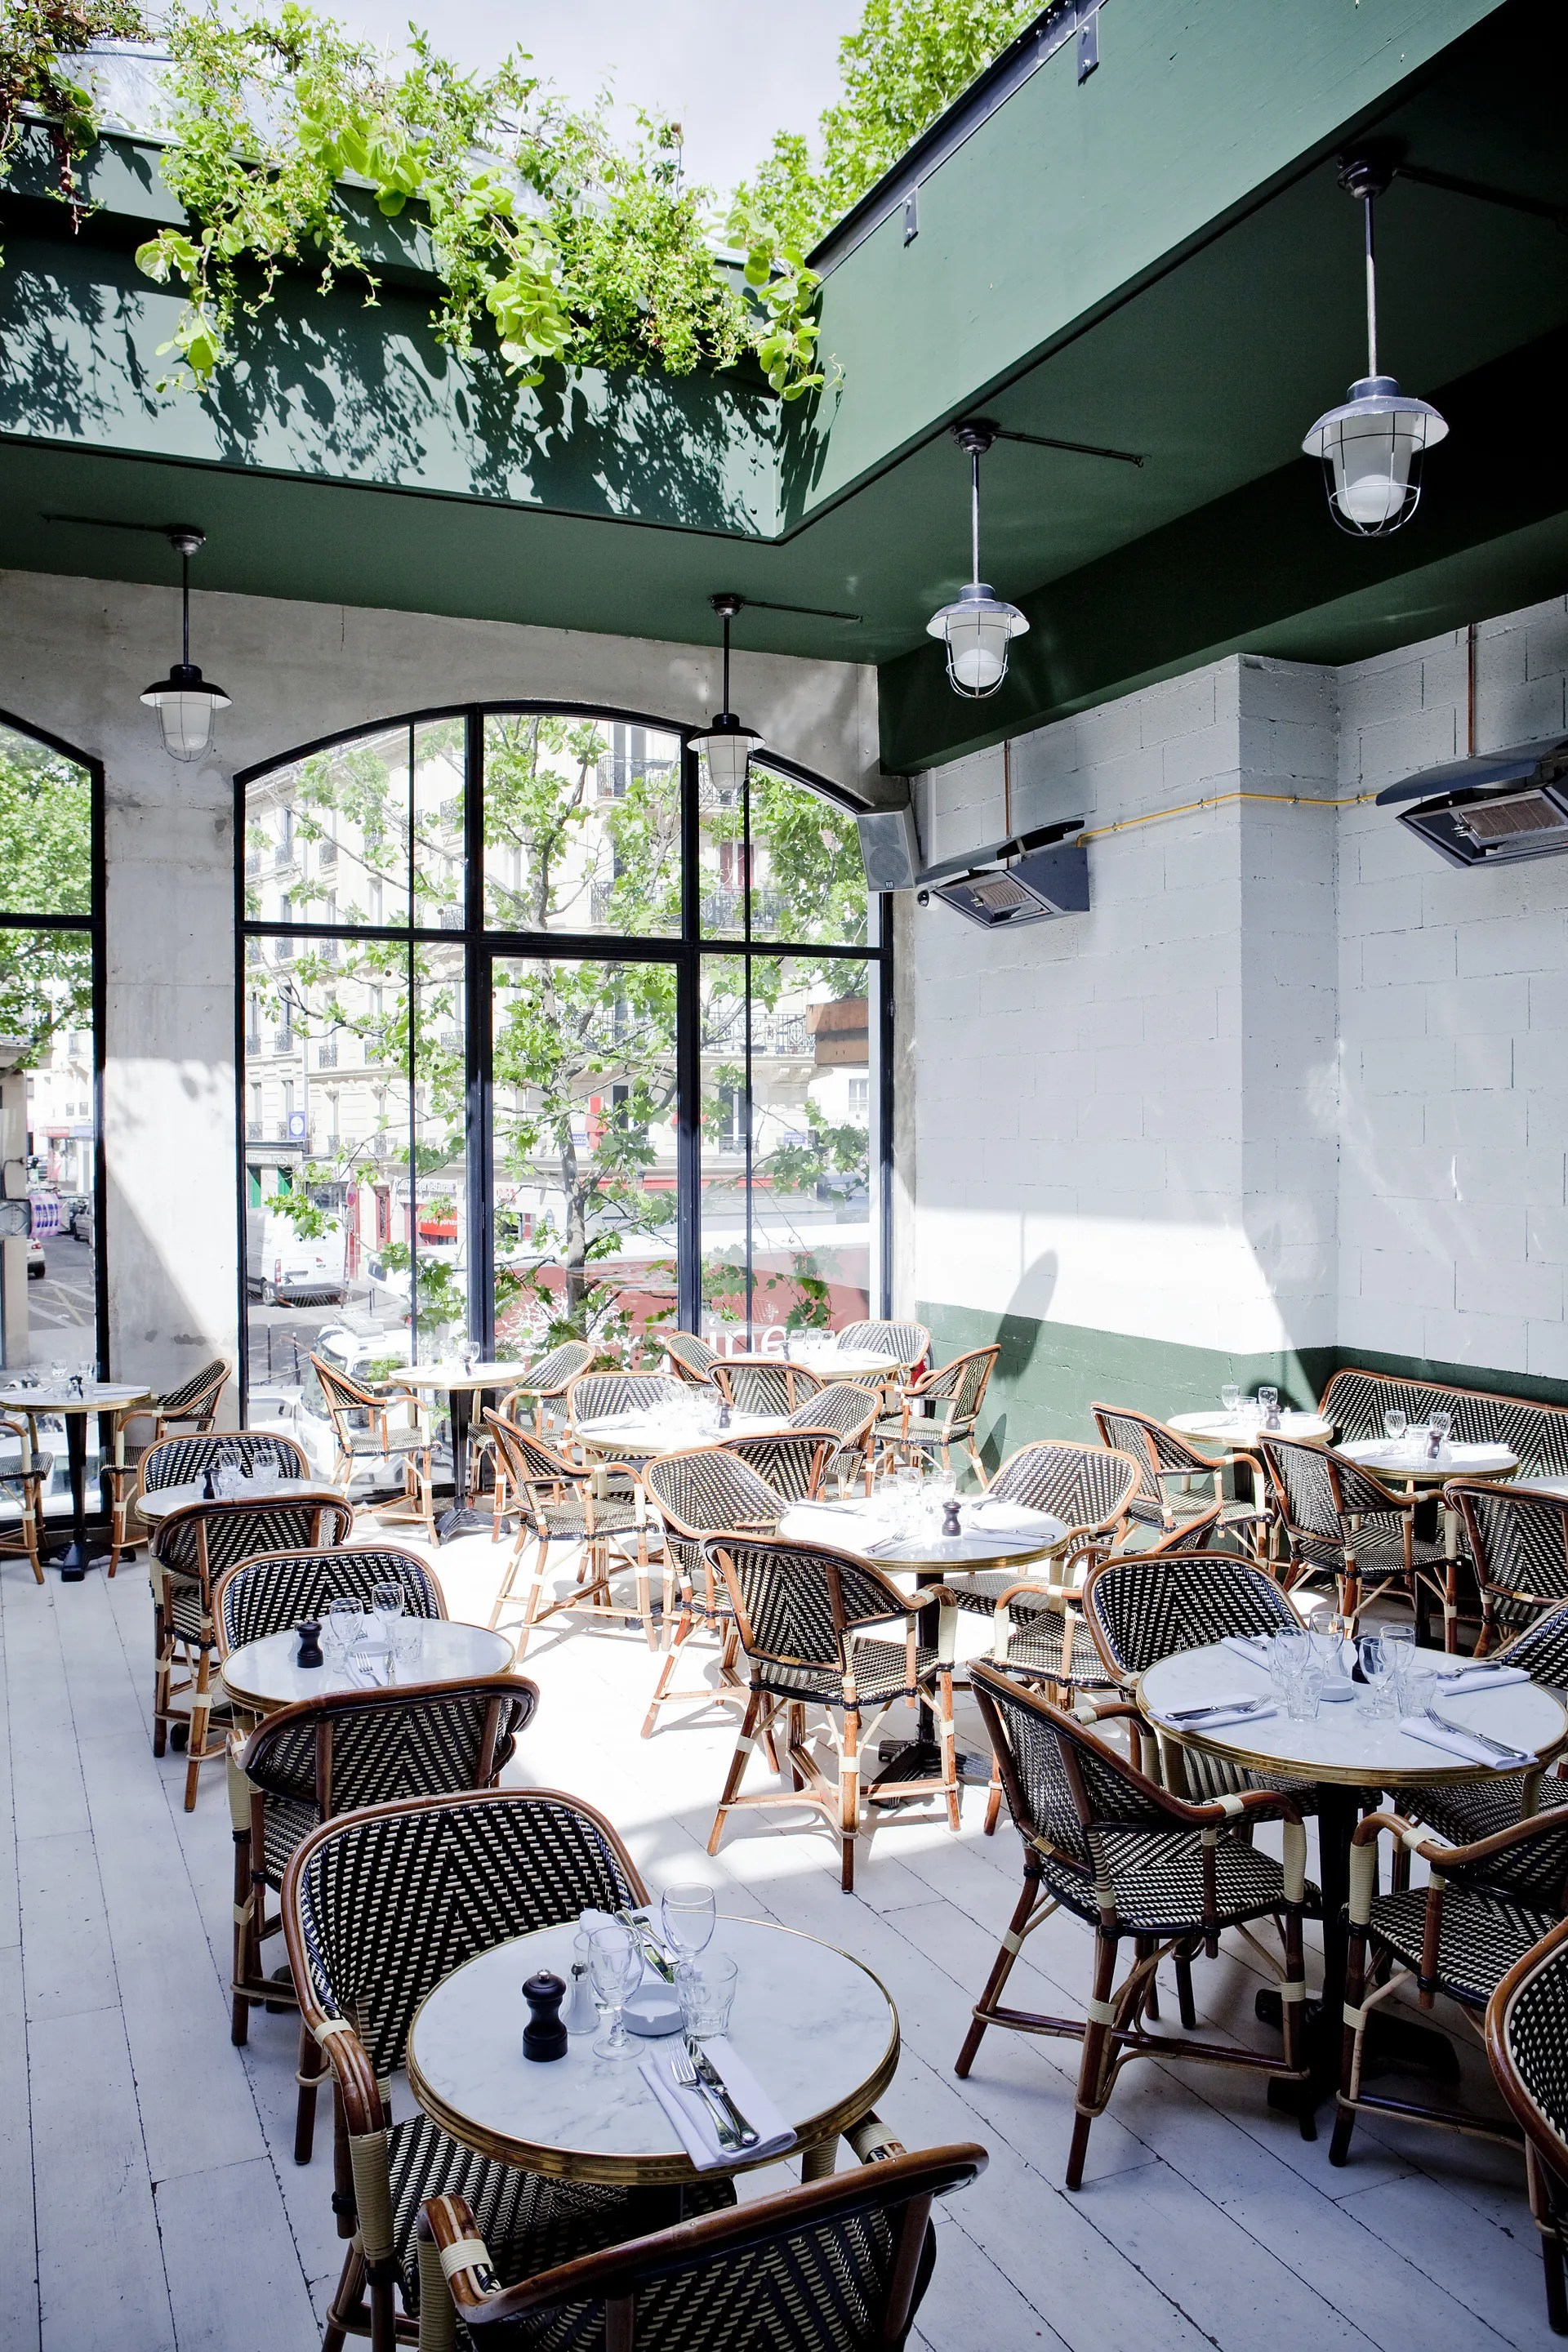 Best Of Terrasse Paris Flipboard En Terrasse The Best Heated Pavement Cafes In Paris 2019